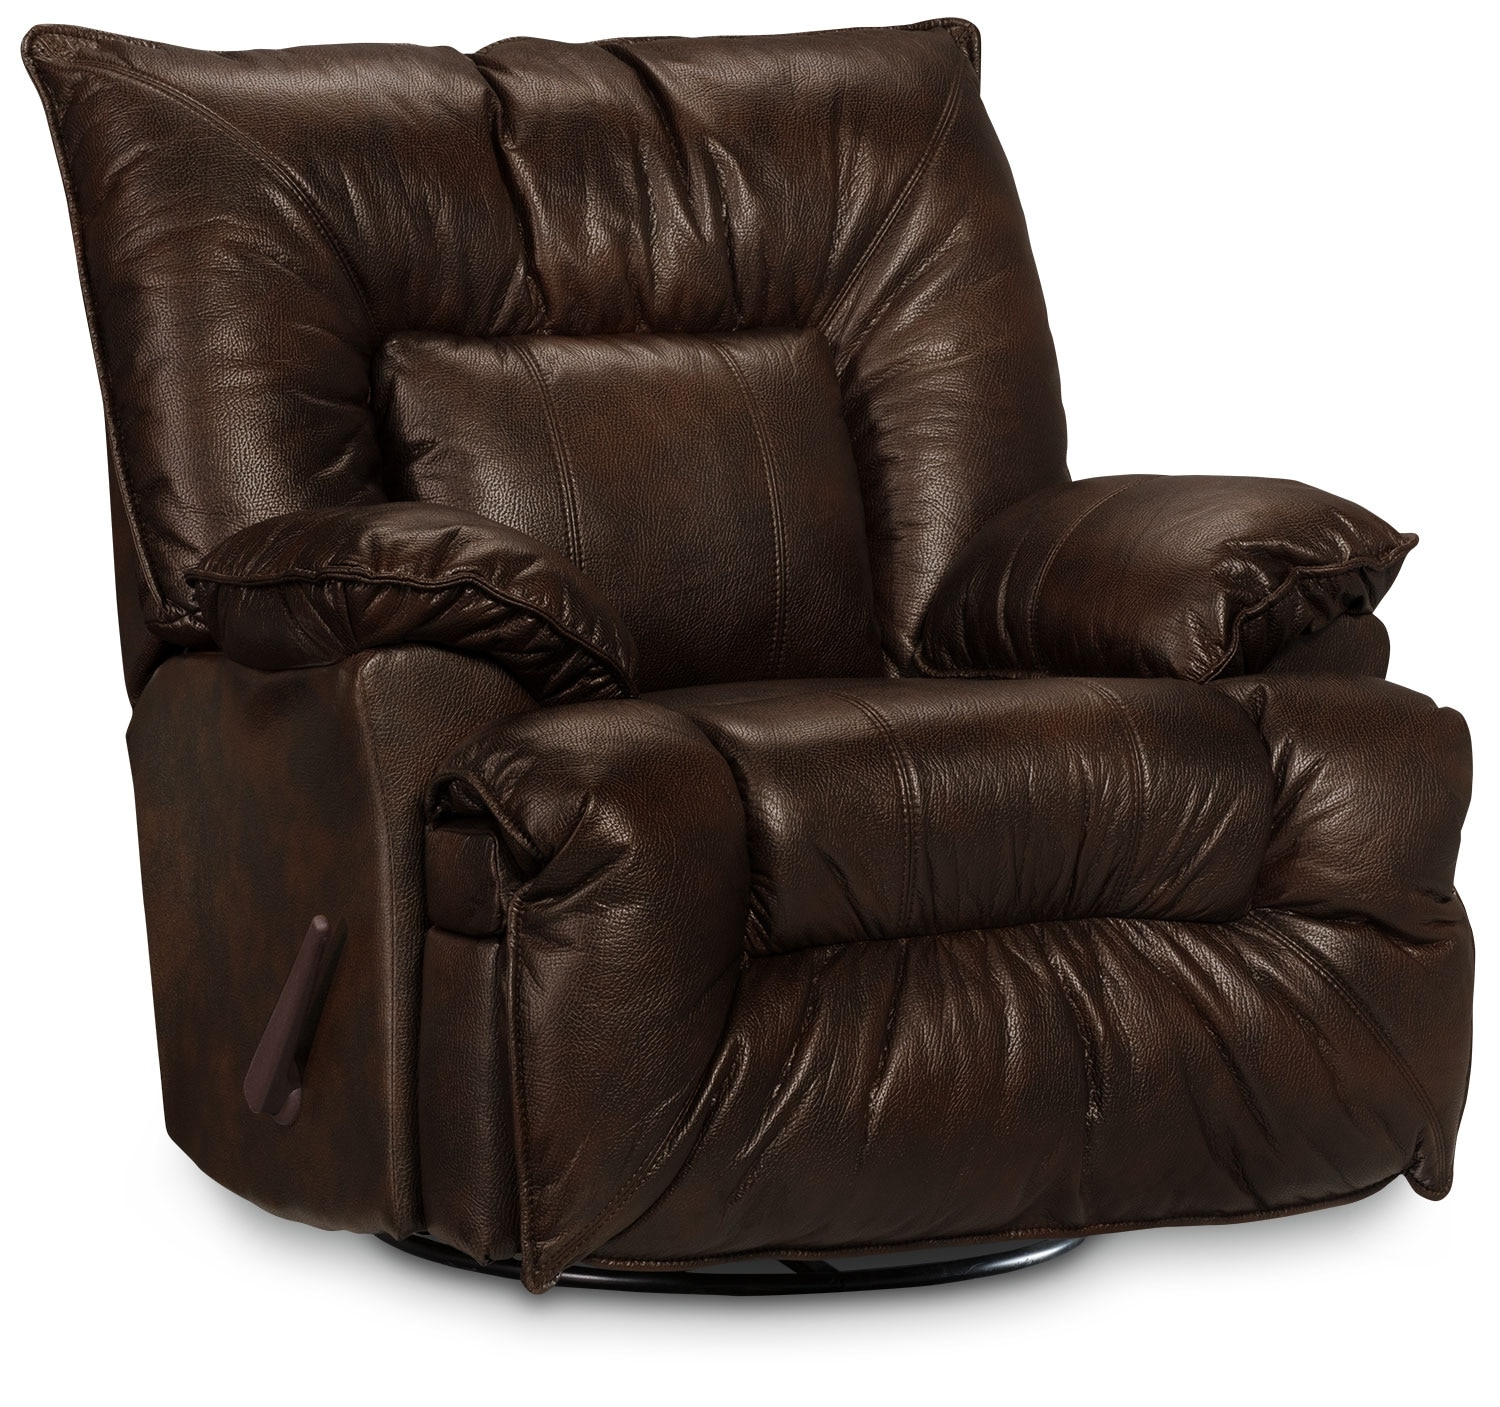 Living Room Furniture - Designed2B Recliner 7726 Genuine Leather Swivel Glider Chair - Chocolate